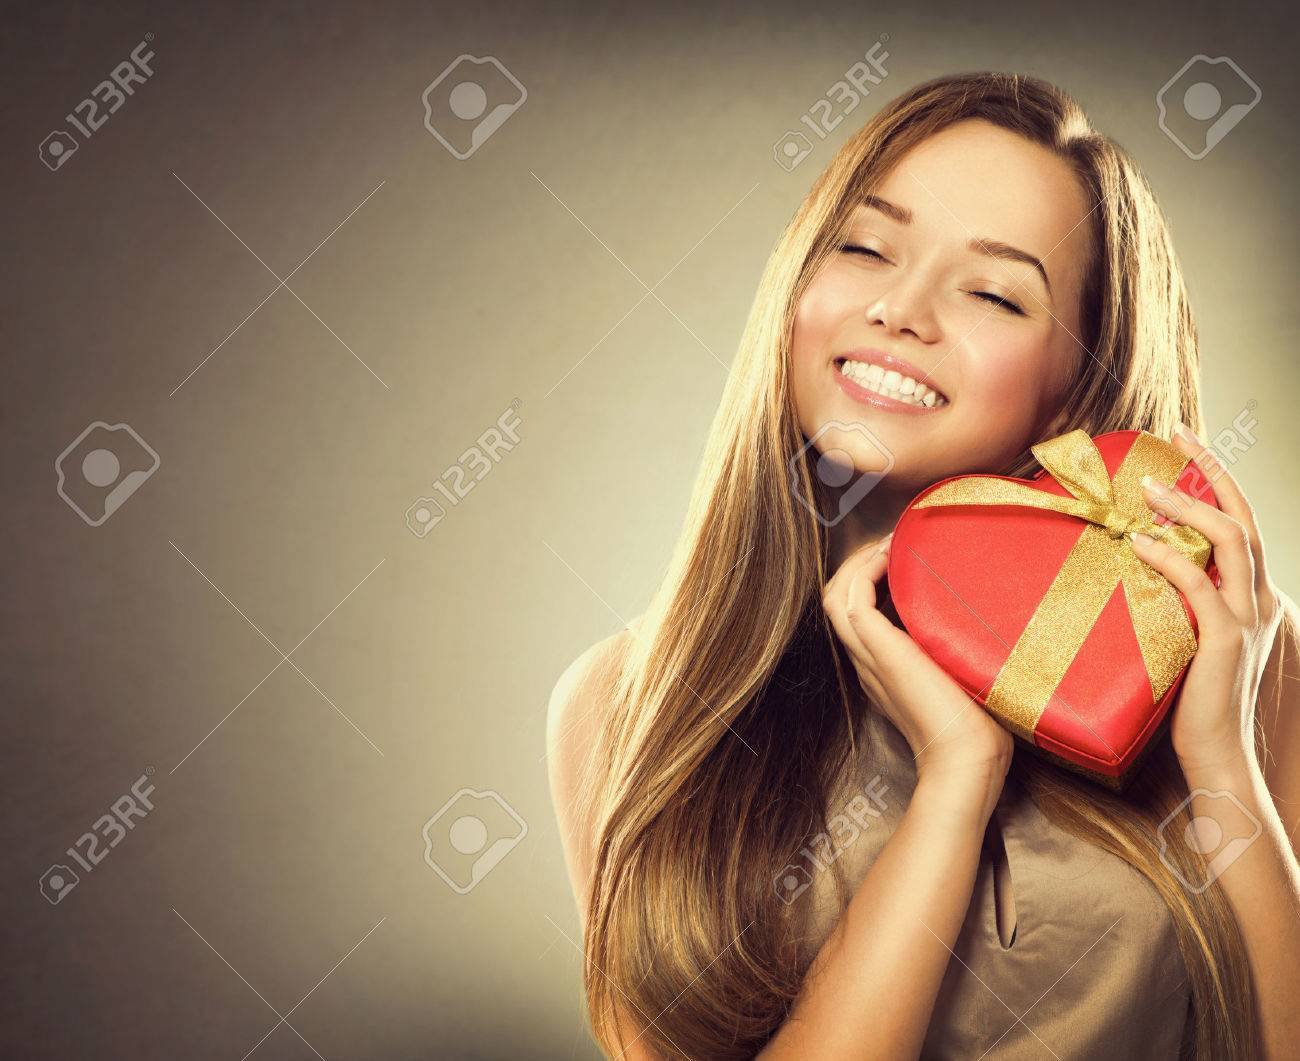 Beauty happy girl with Valentine gift box Stock Photo - 35403240  sc 1 st  123RF.com & Beauty Happy Girl With Valentine Gift Box Stock Photo Picture And ...